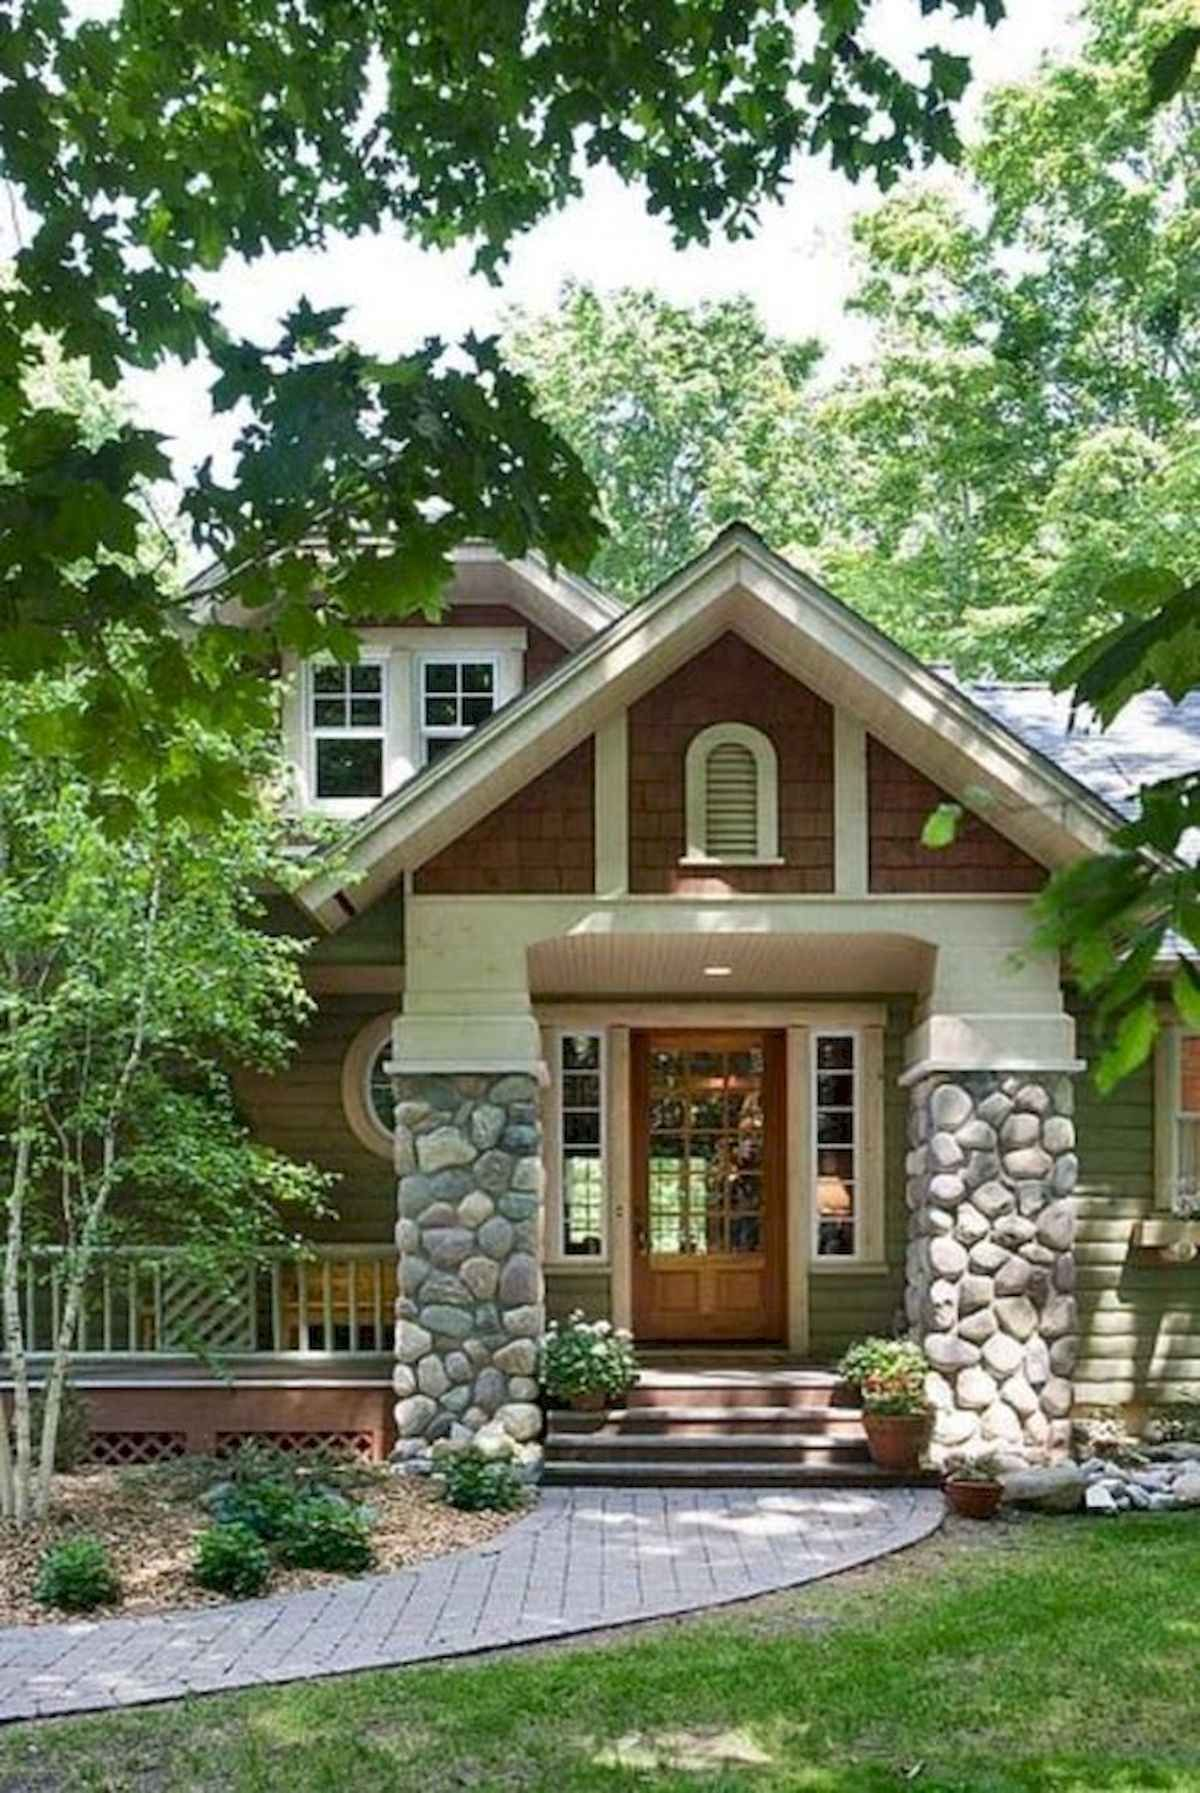 40 Amazing Craftsman Style Homes Design Ideas (23) - LivingMarch.com #craftsmanstylehomes